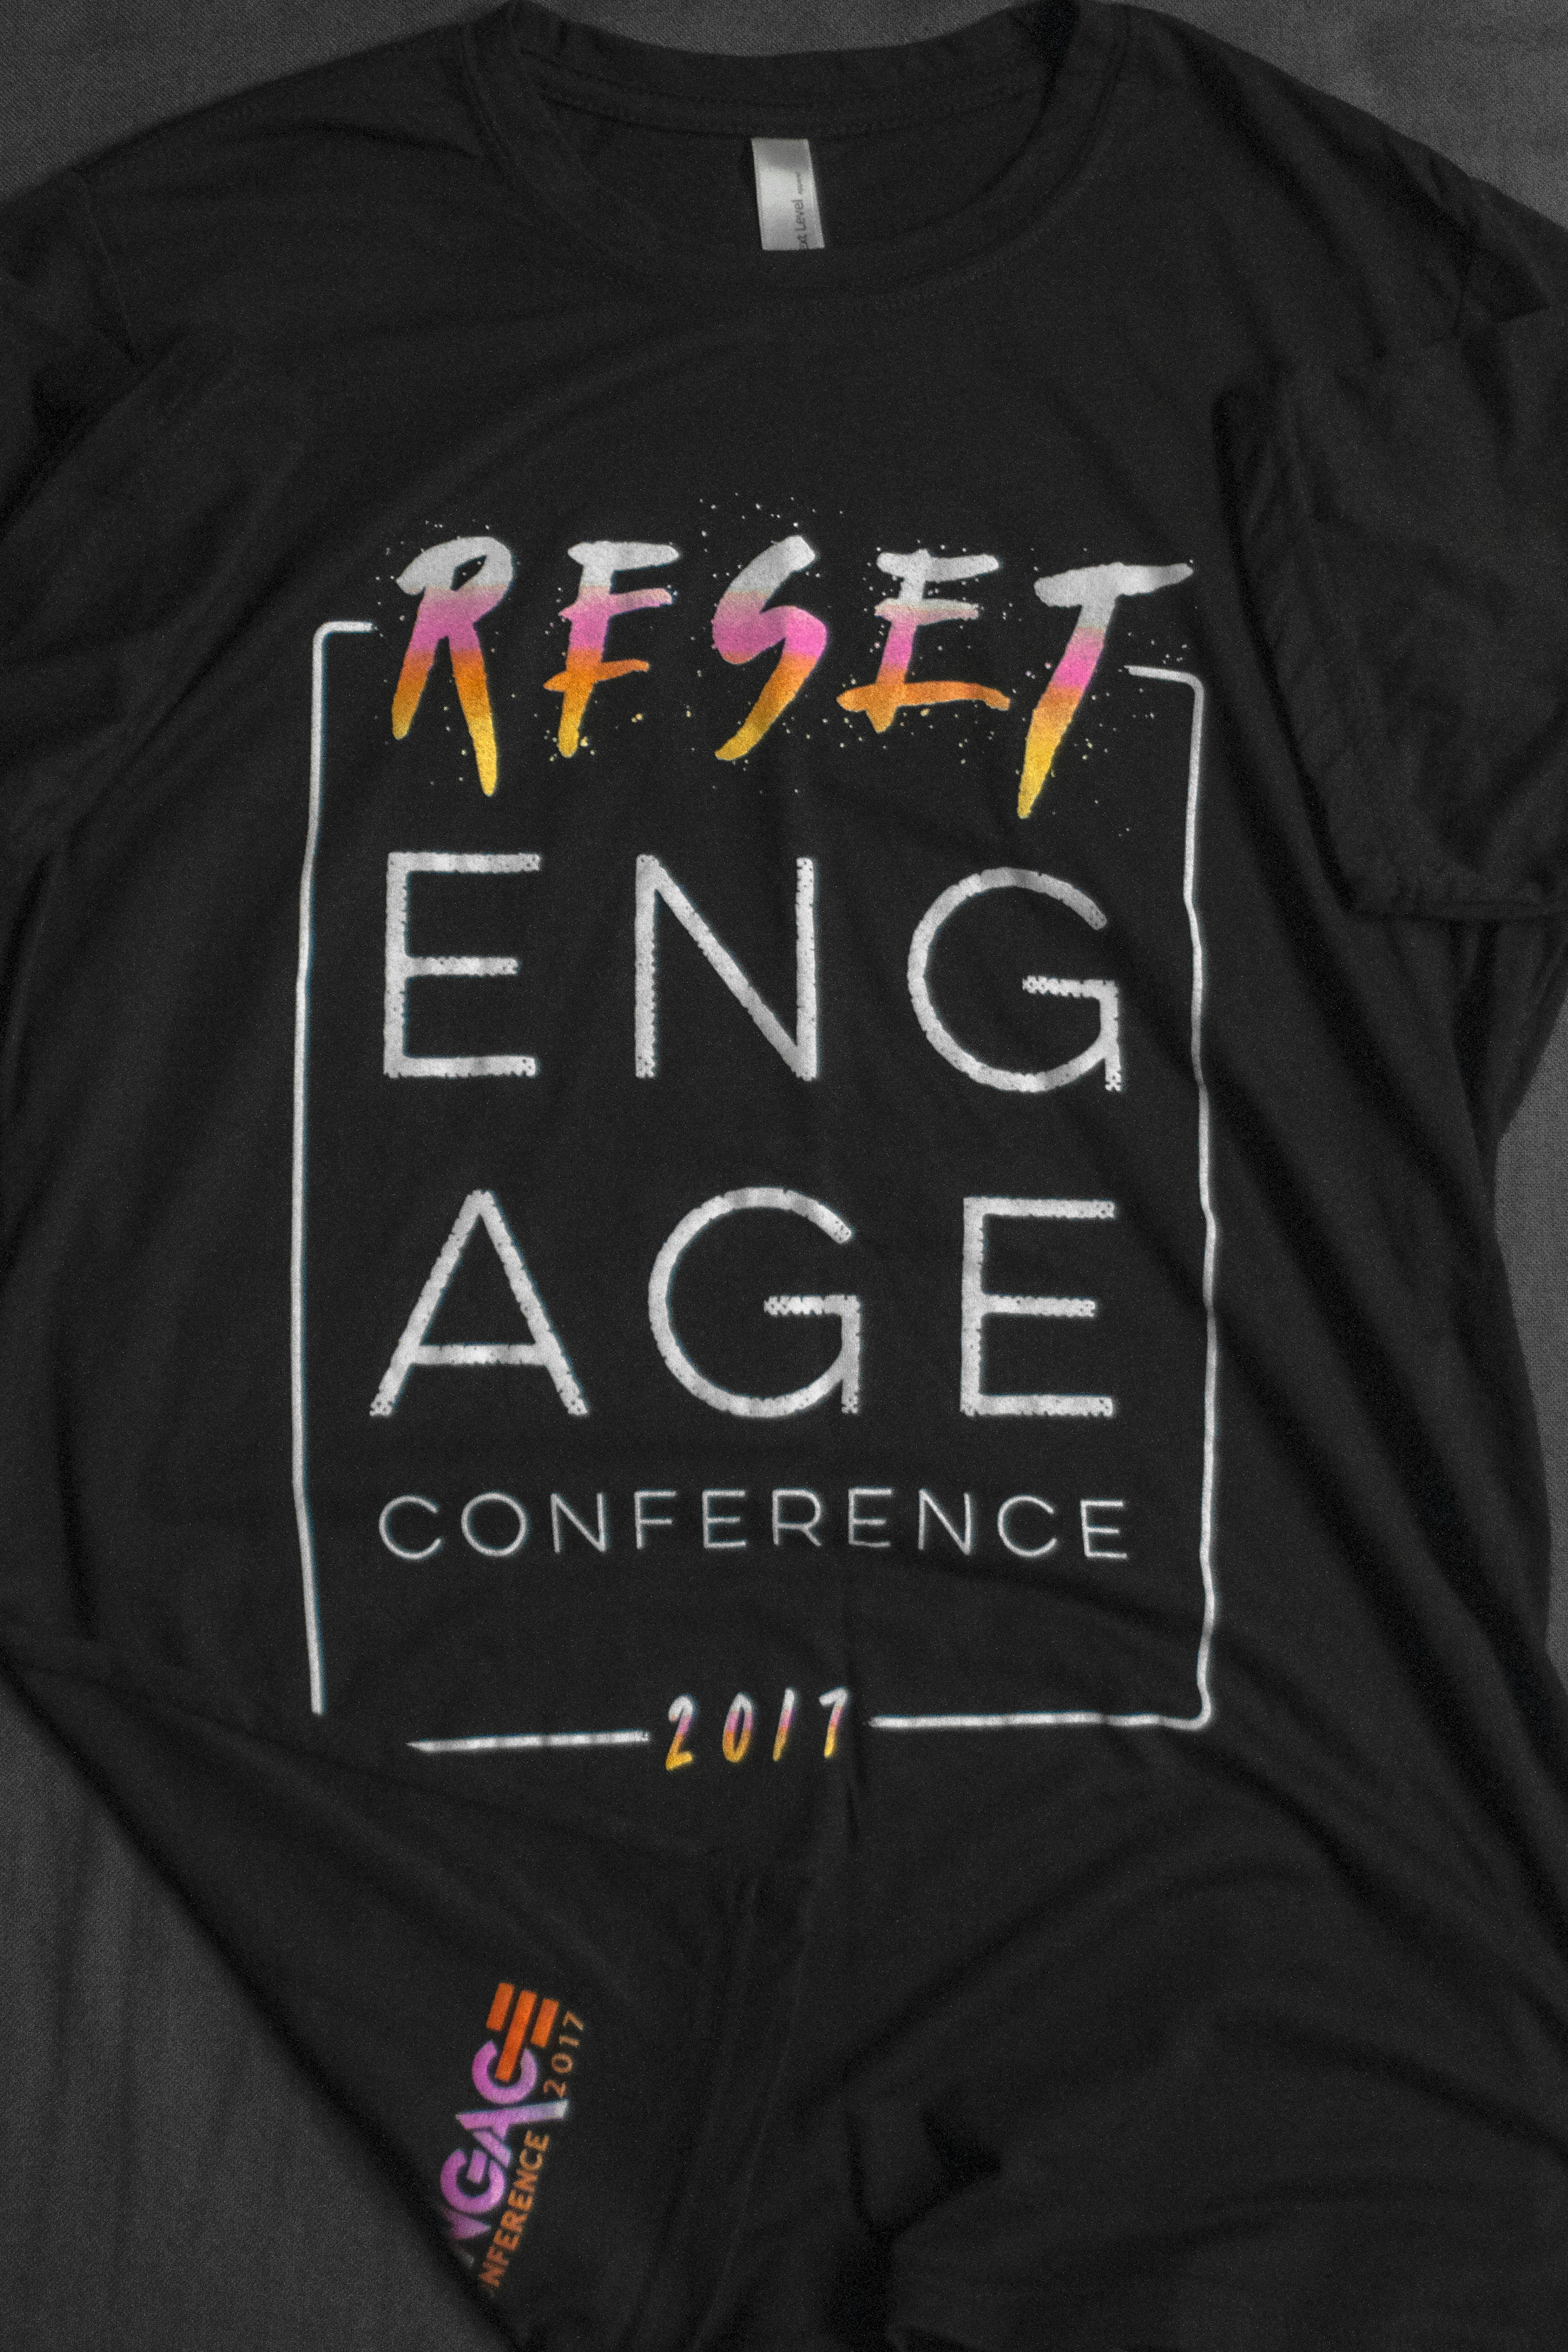 ENGAGE CONFERENCE -  RESET TEE    $10.00